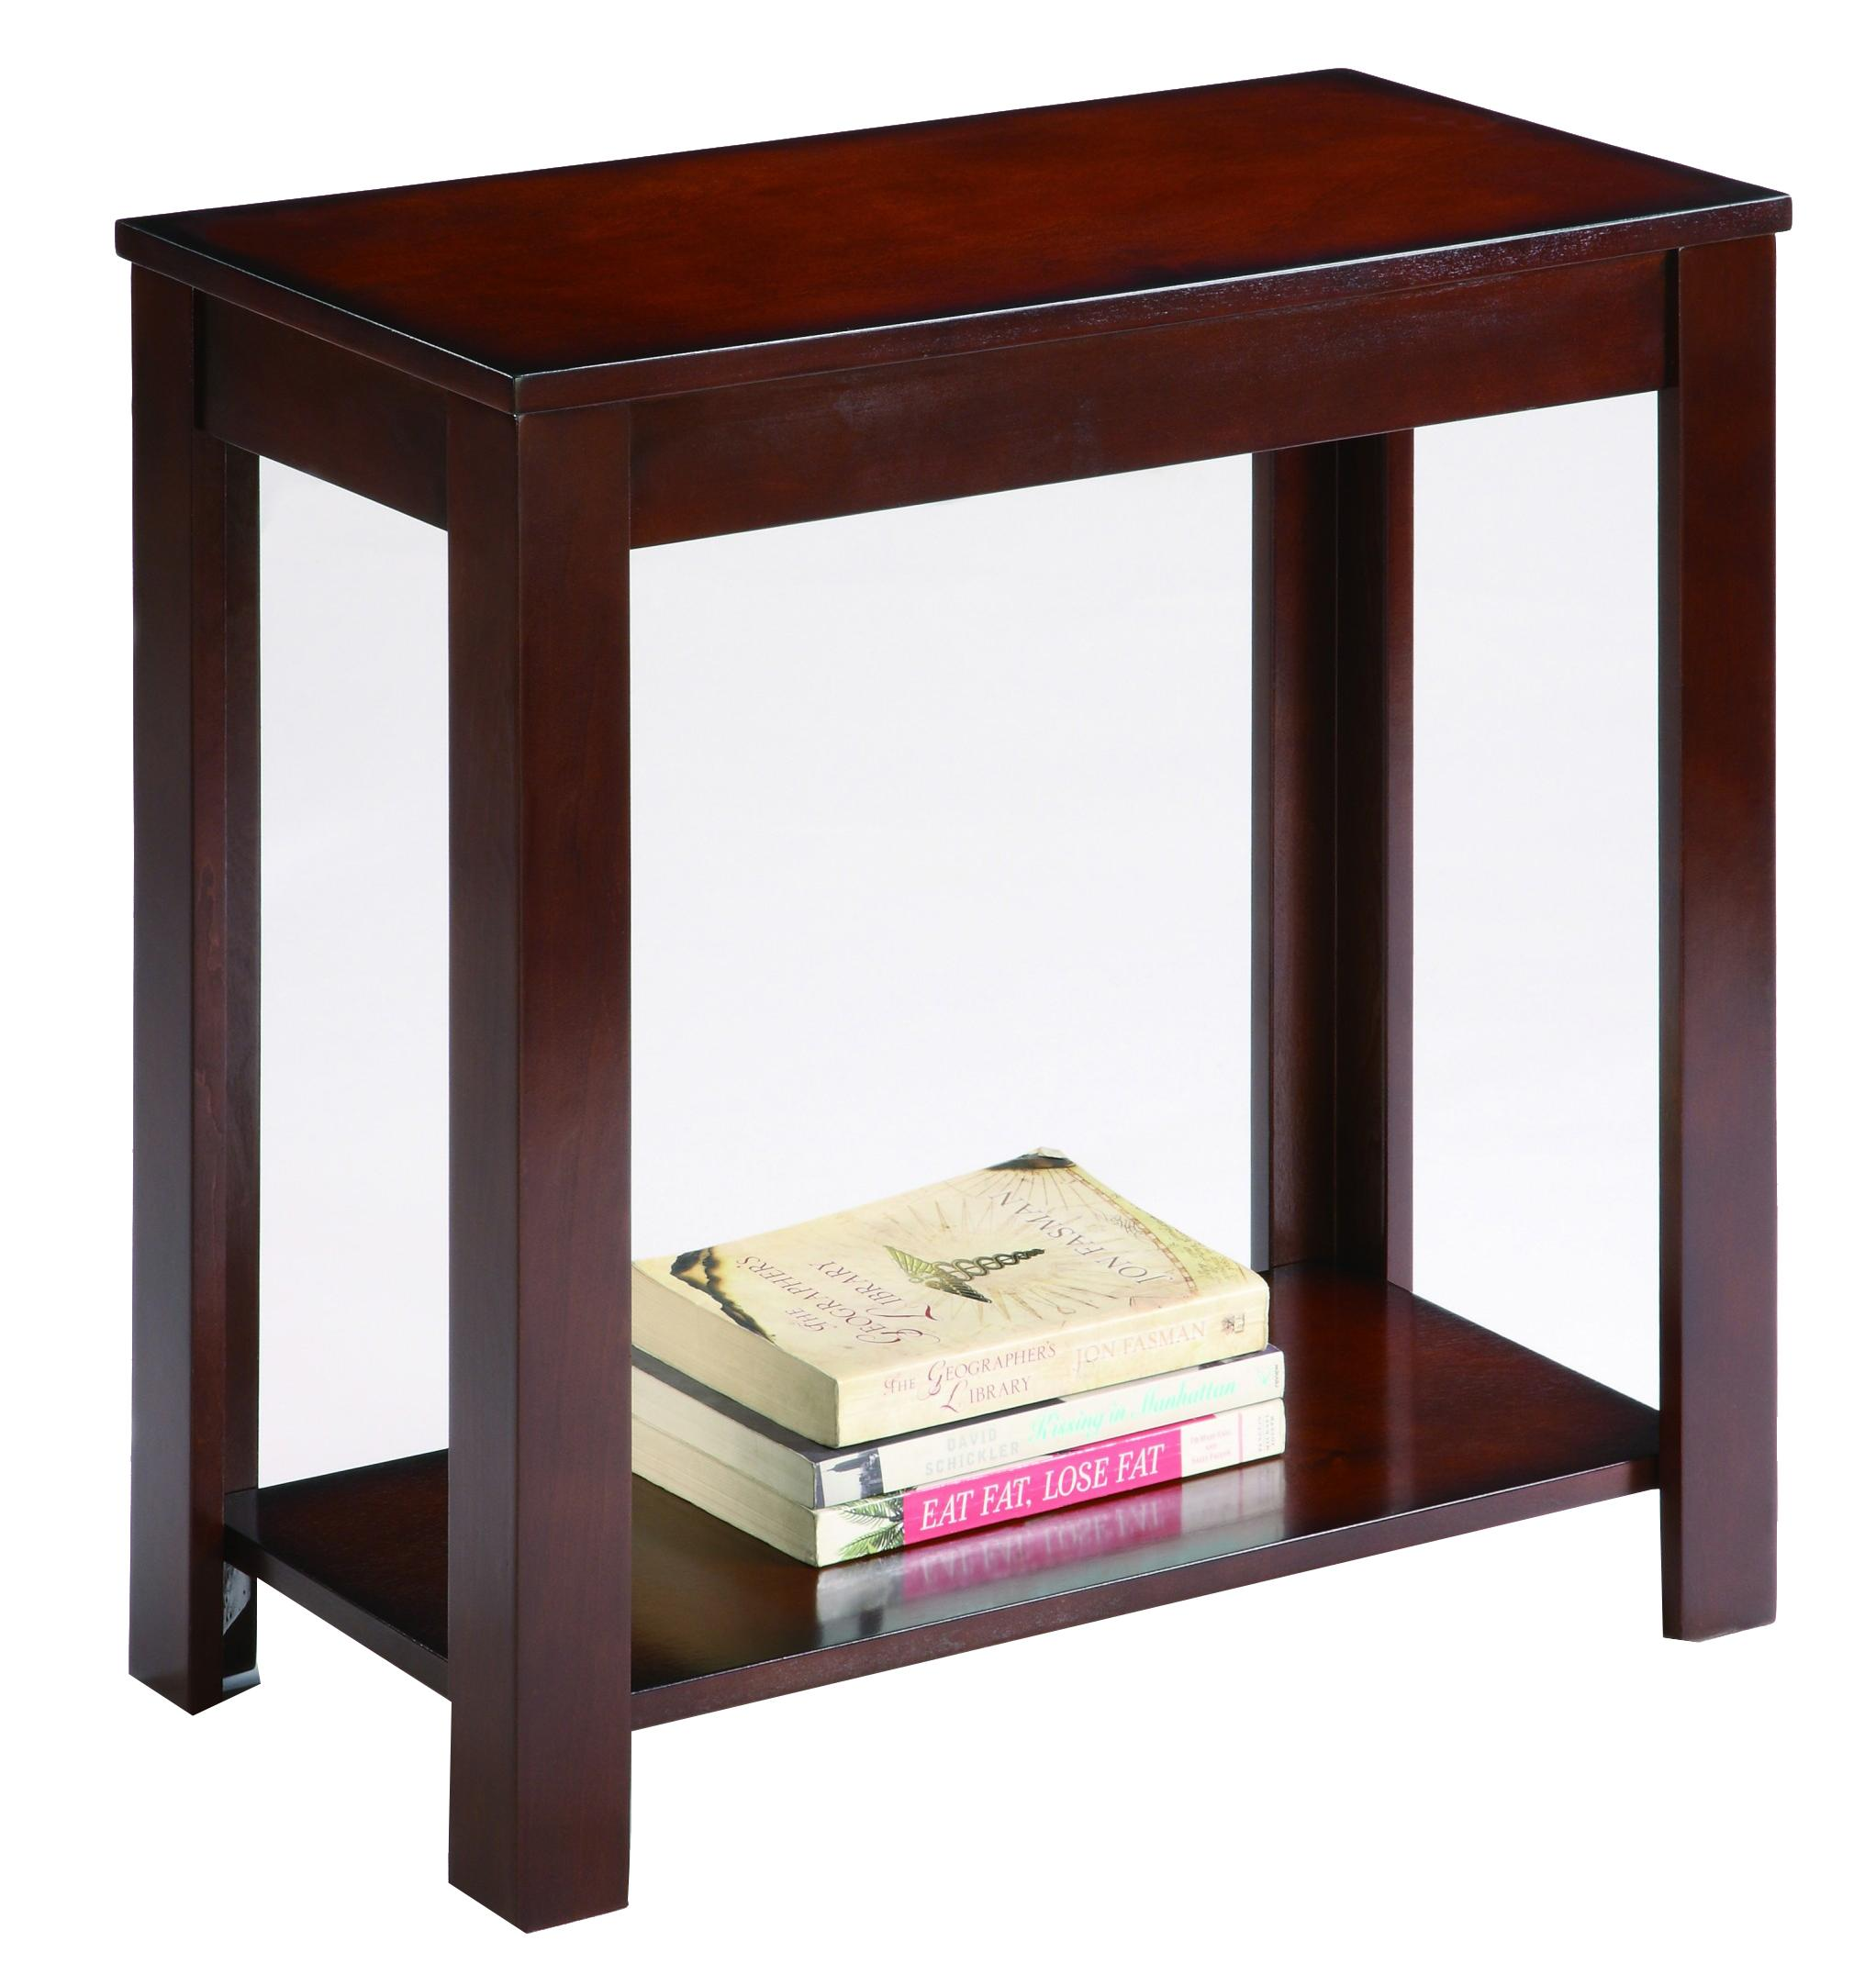 Crown Mark Chairside Tables Chairside Table - Item Number: 7710